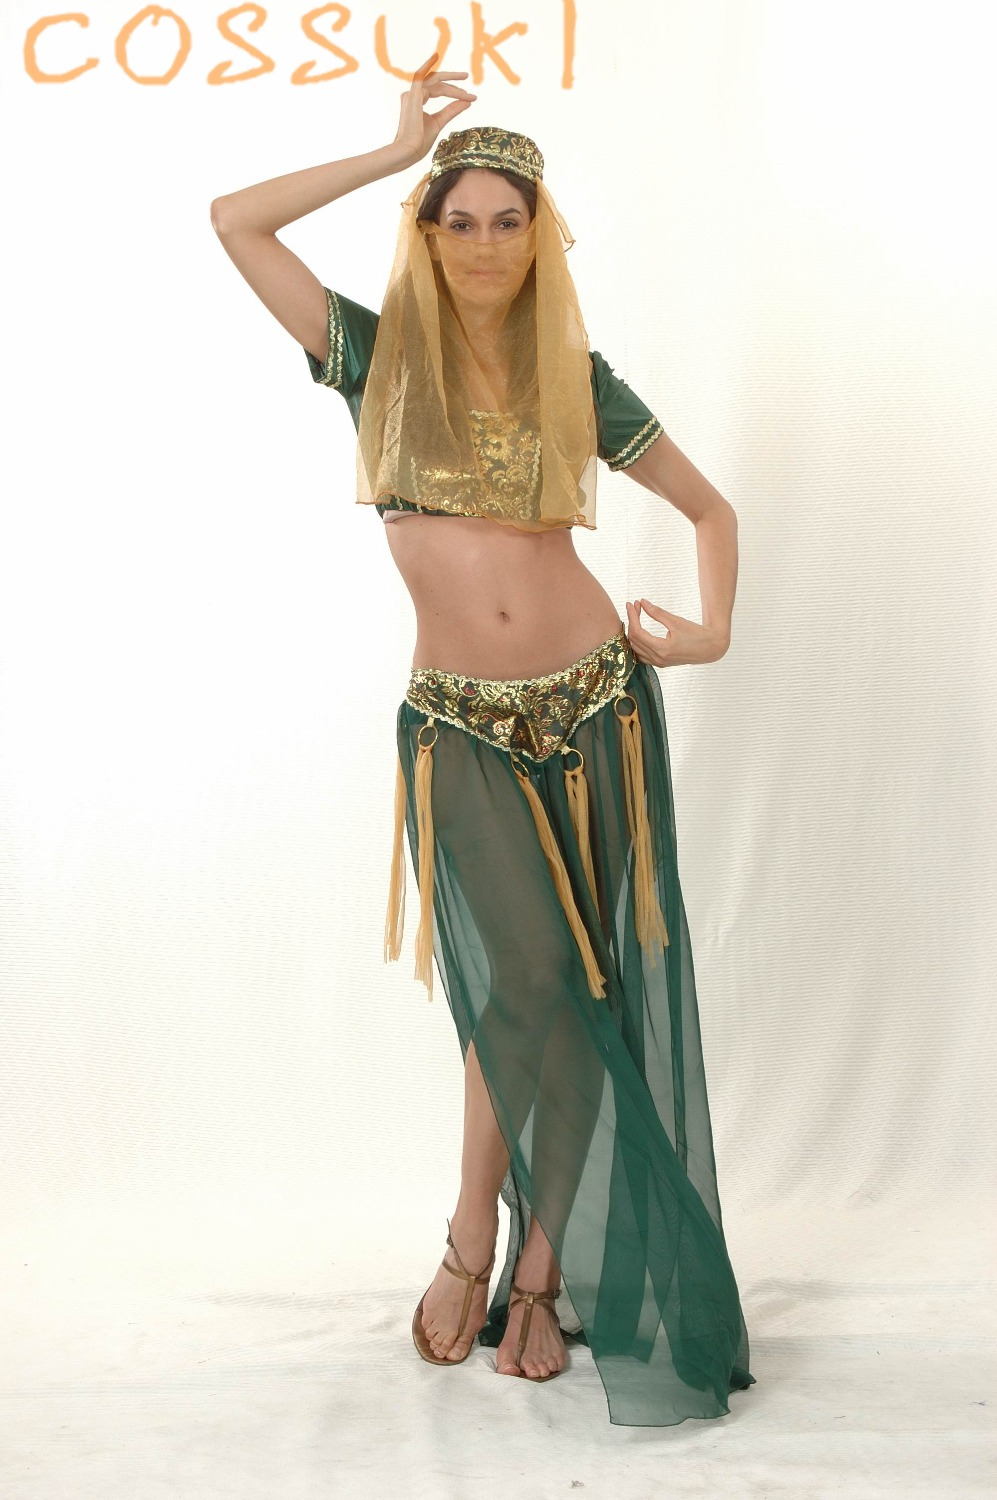 free pp sexy costumes sexy erotic lingerie arabic belly dance sexy